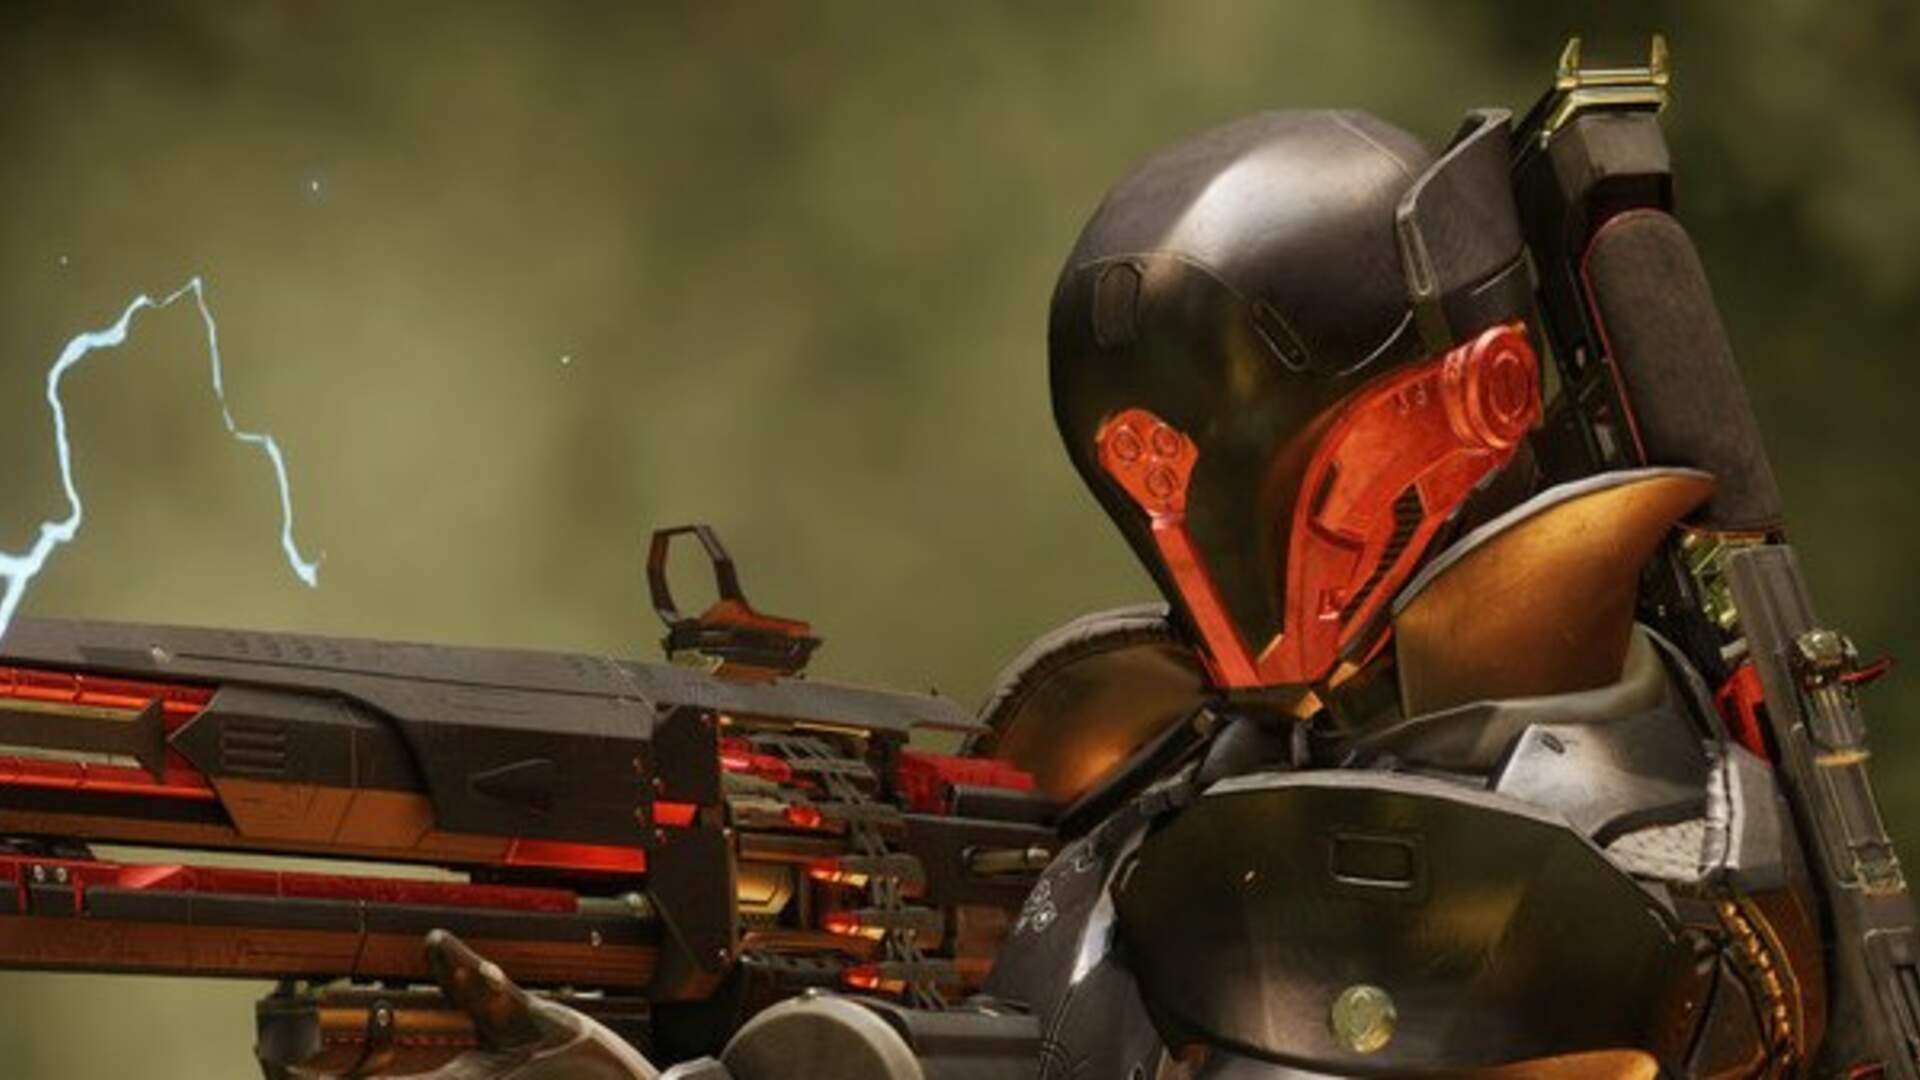 Destiny 2 Exotics - How to Get All the Best Exotic Weapons and Armor